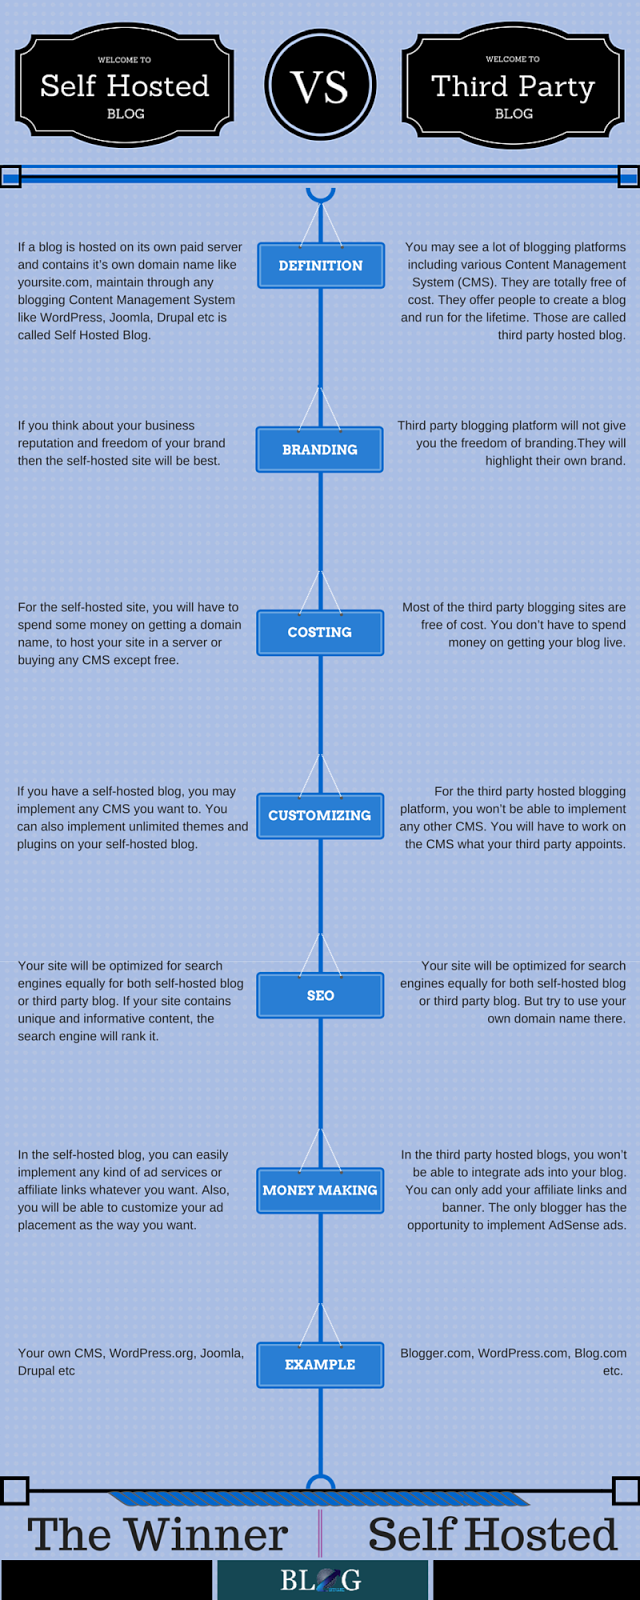 Self Hosted Blog Vs Third Party Blog Infographic